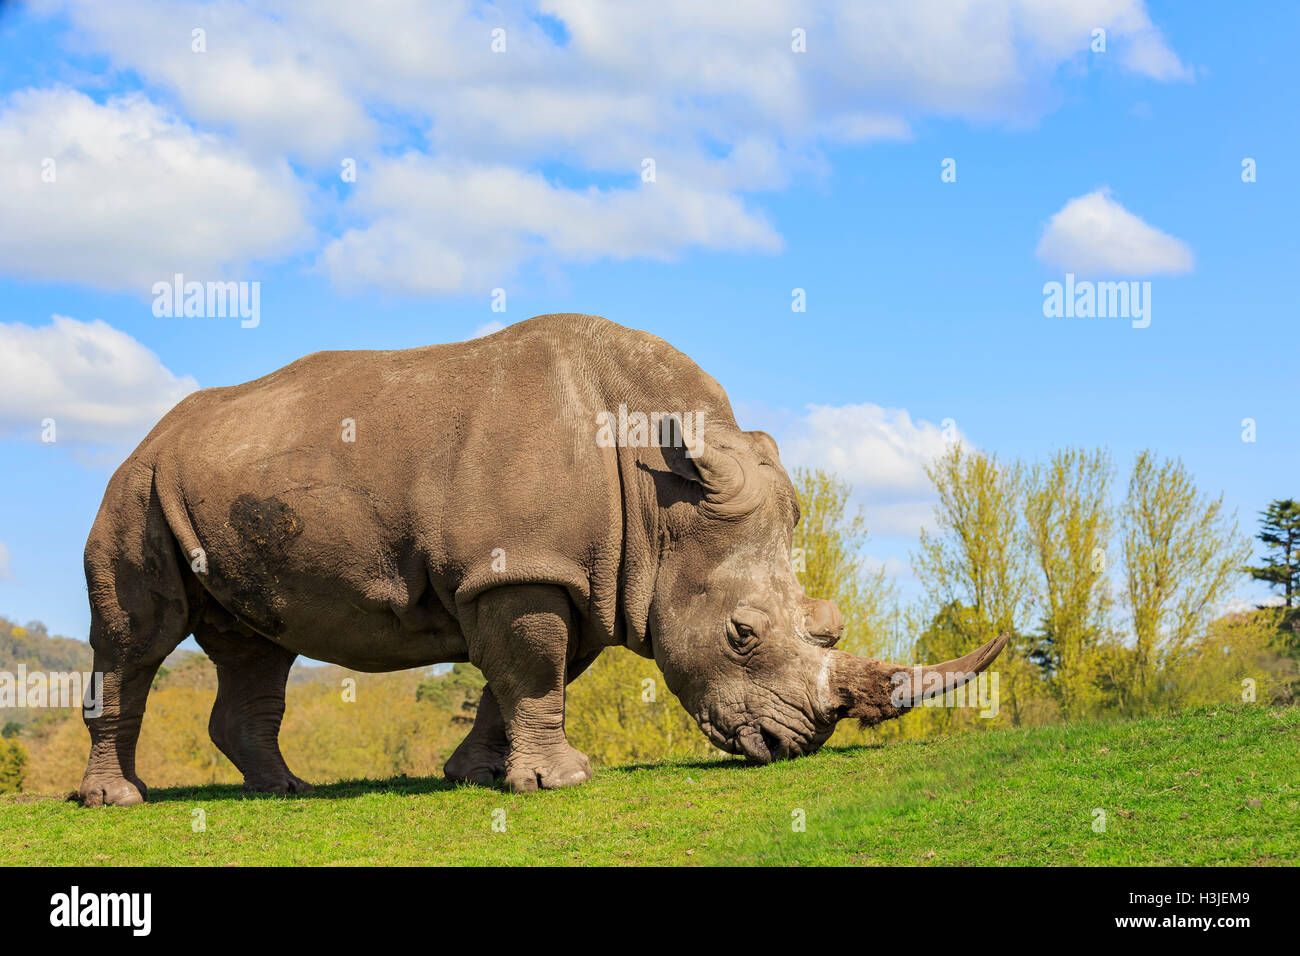 The Indian Rhinoceros in the beautiful West Midland Safari Park on APR 23, 2016 at Spring Grove, United Kingdom - Stock Image